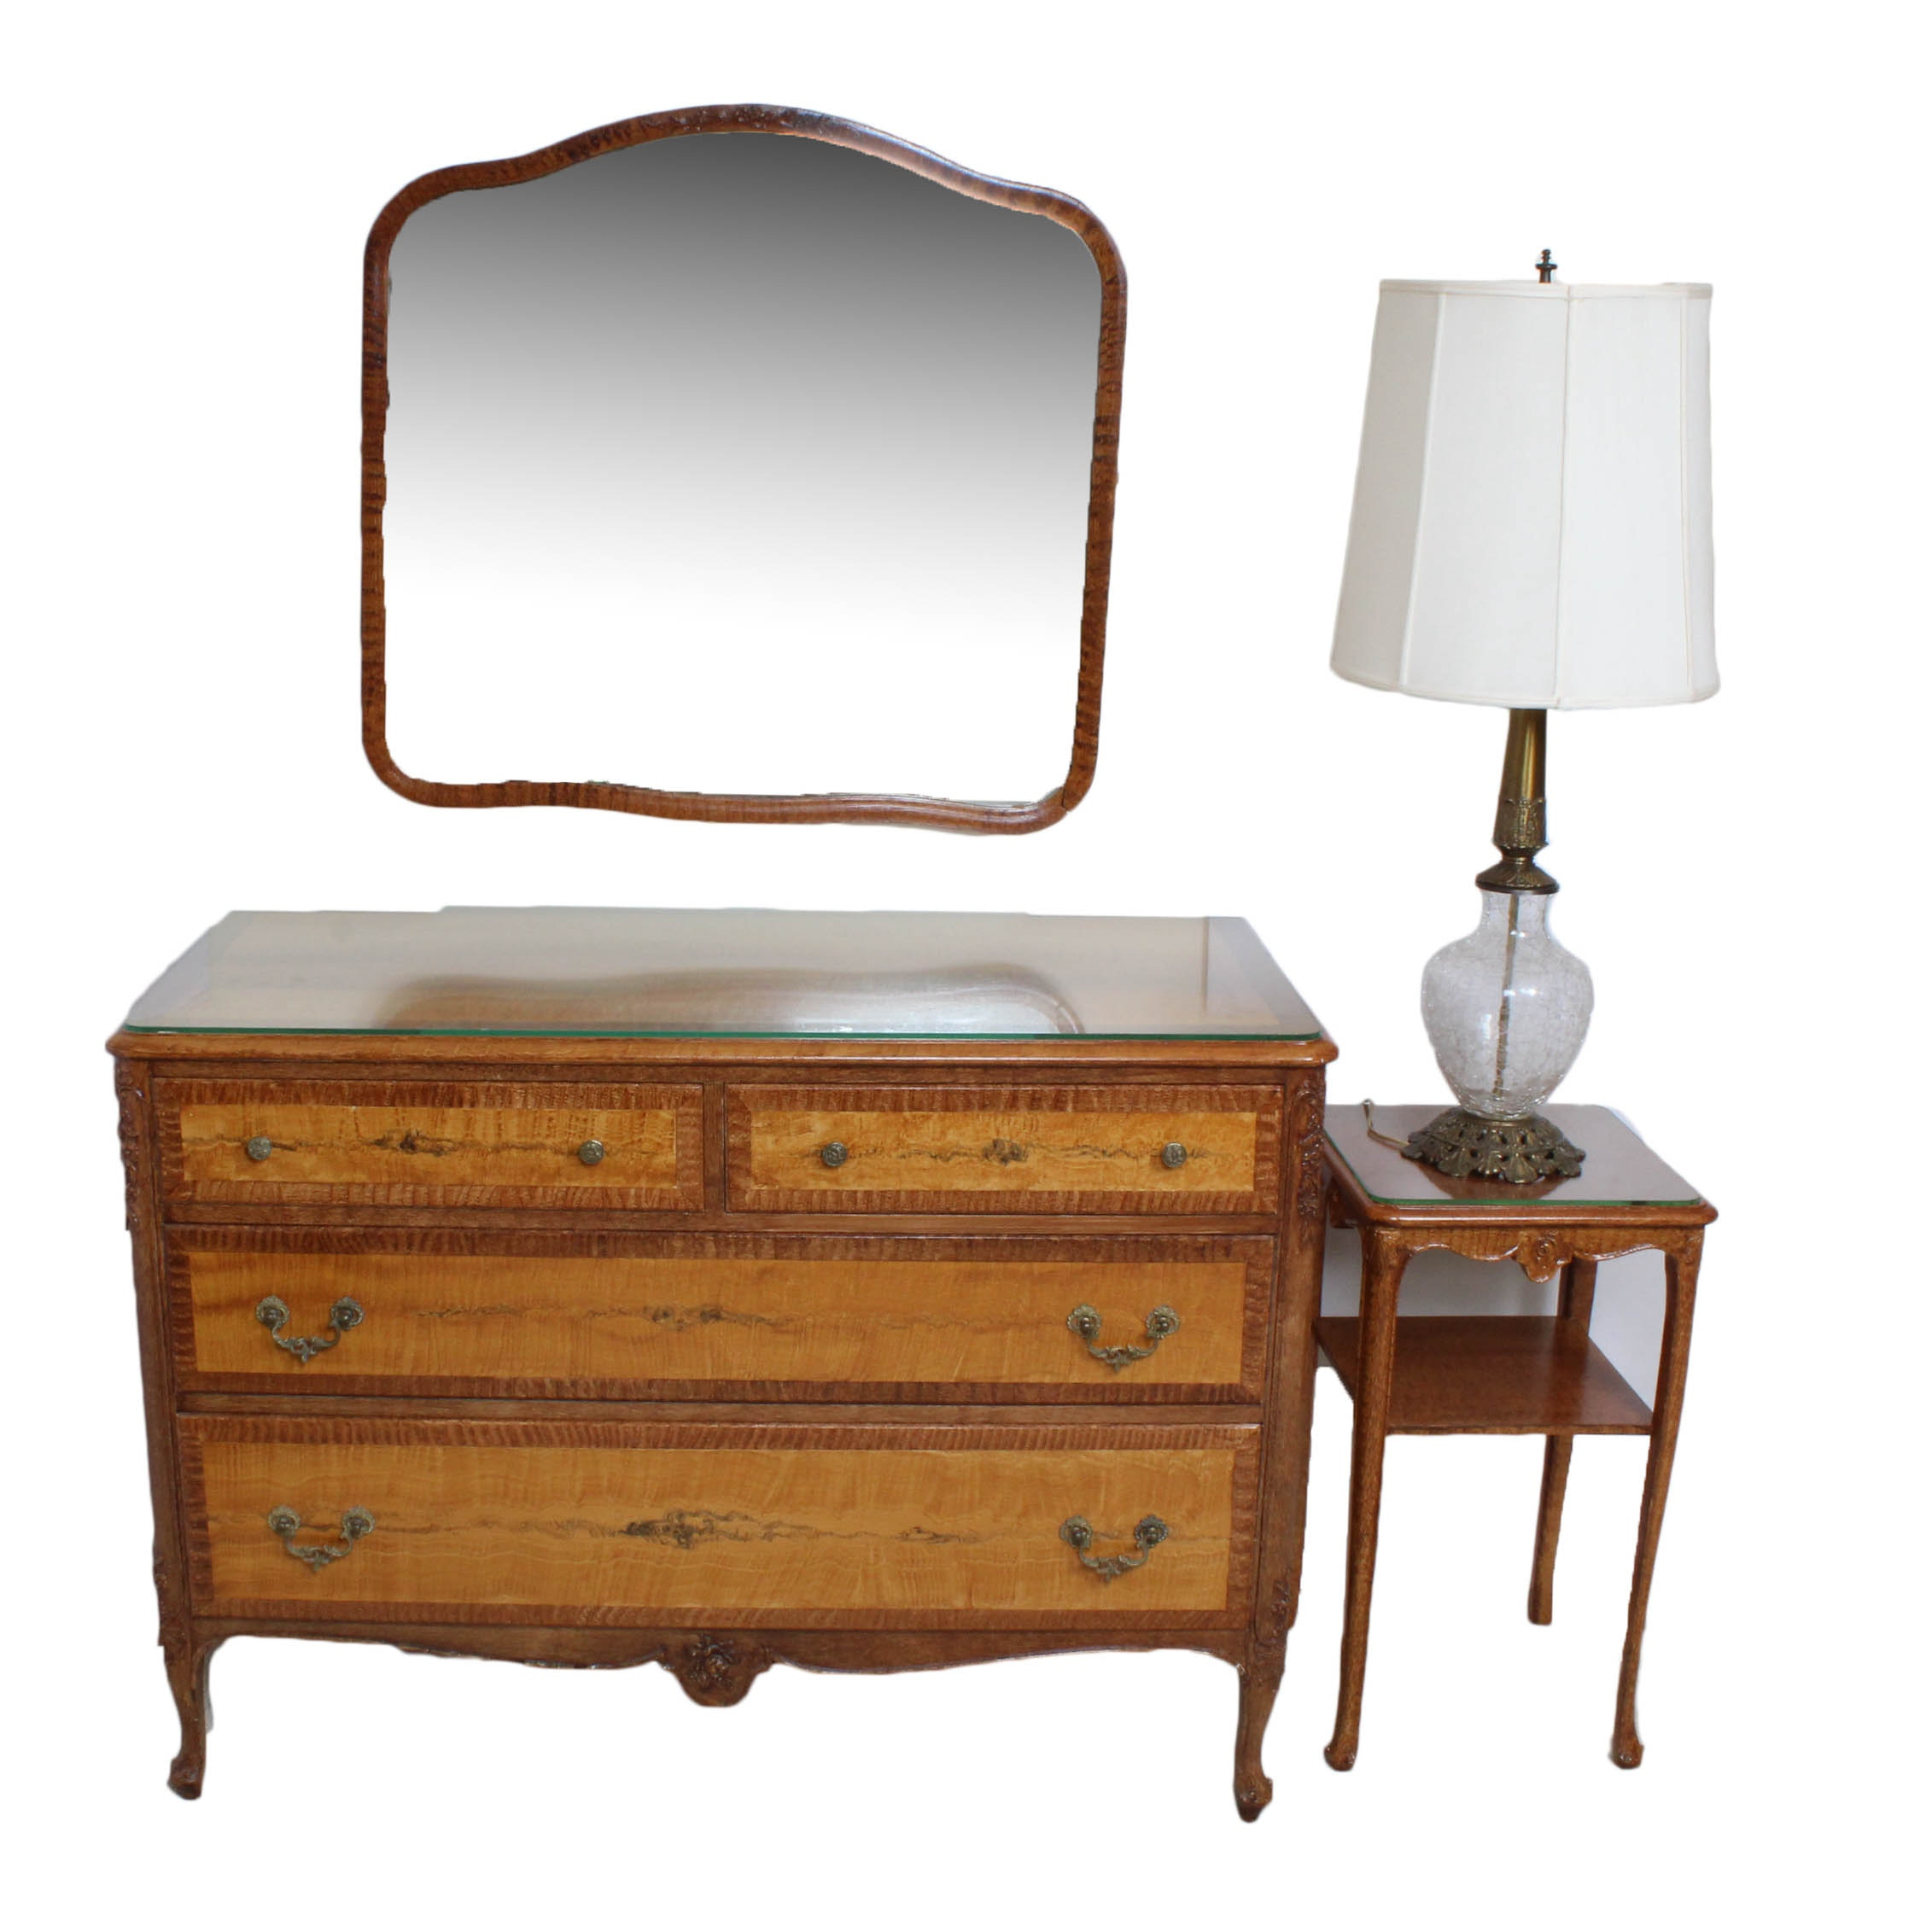 Antique Grain Painted Dresser, Mirror and Side Table